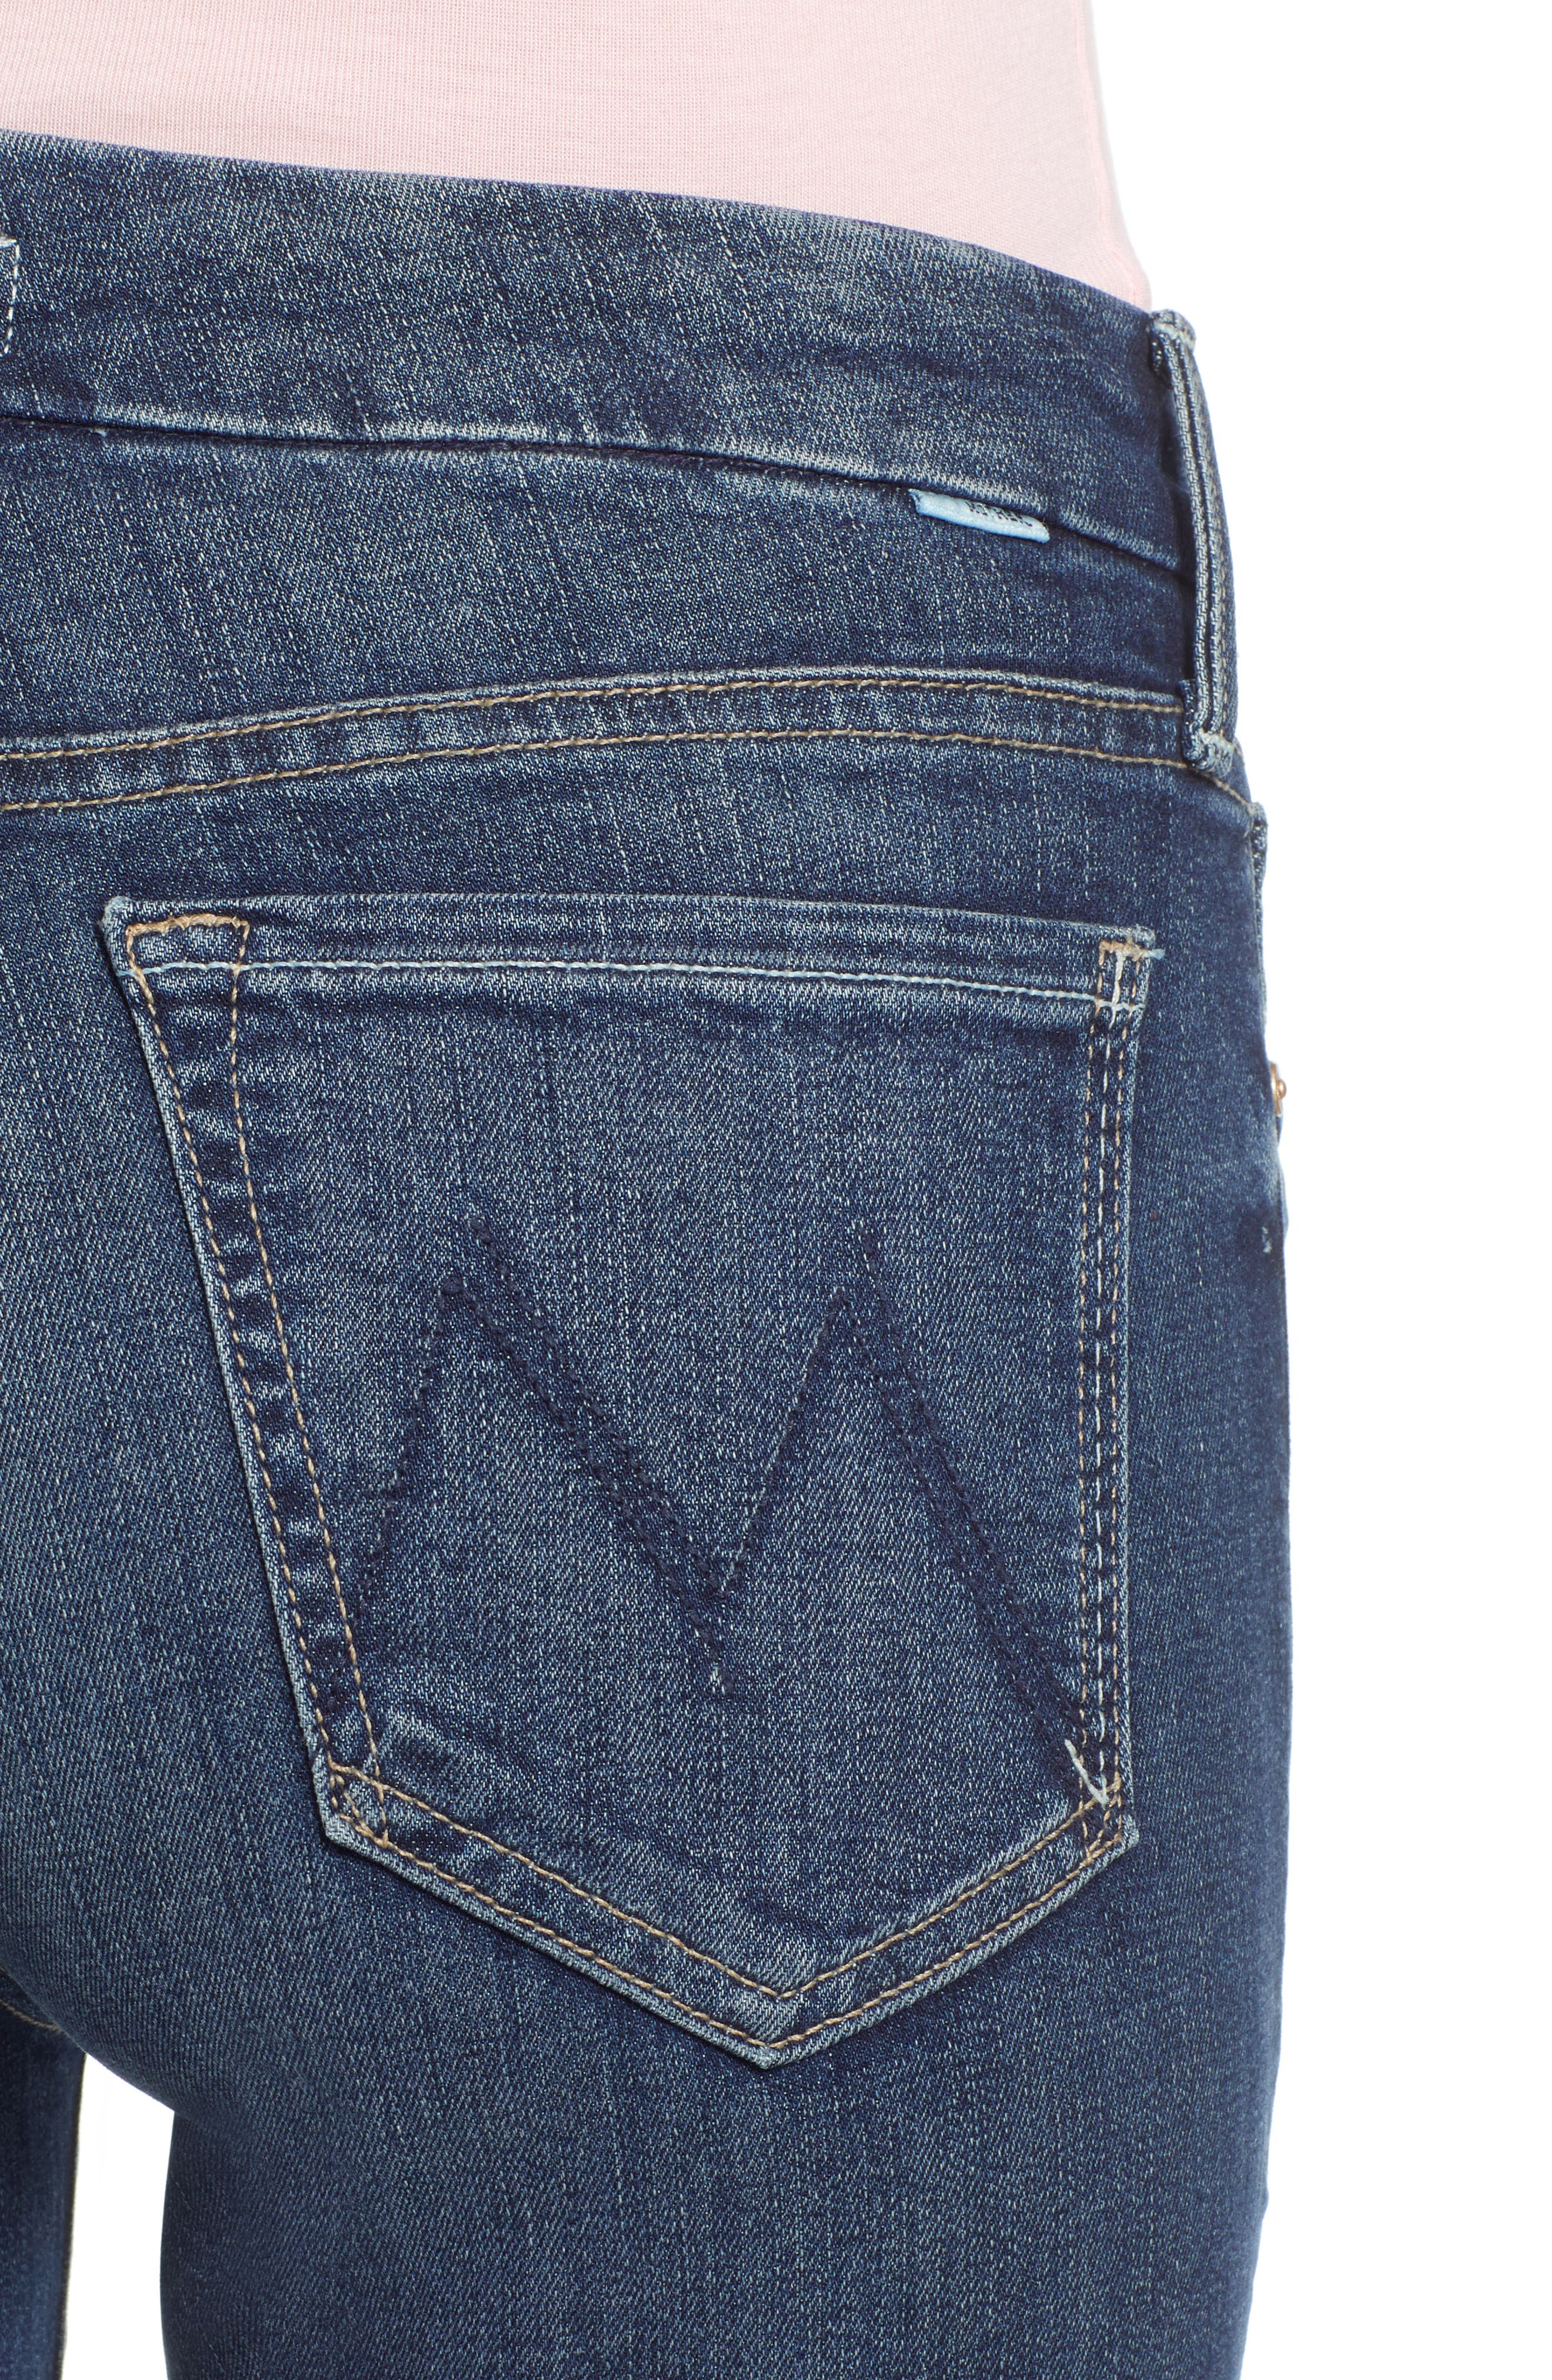 MOTHER, 'The Looker' Crop Skinny Jeans, Alternate thumbnail 5, color, ON THE EDGE